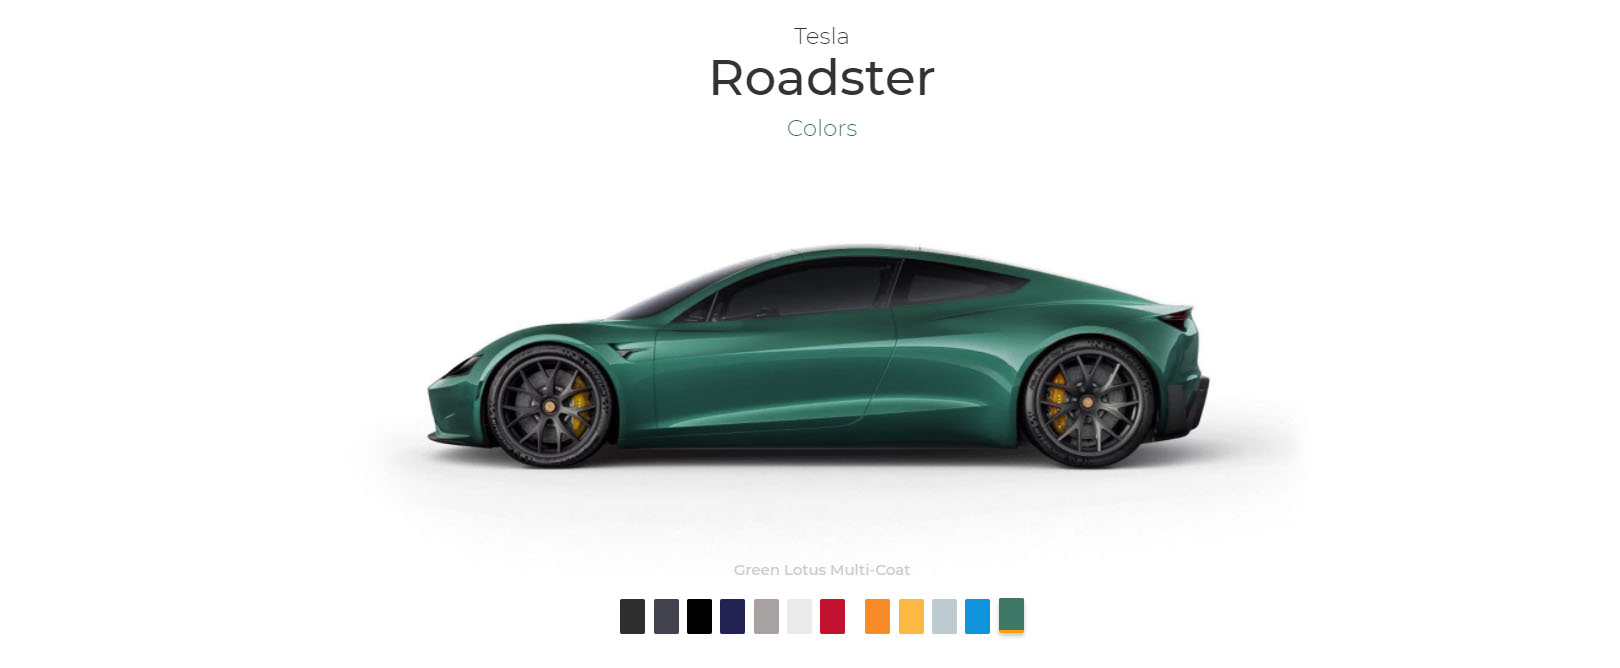 Car Paint Colors >> First Tesla Roadster Unofficial Configurator Allows You to Sample 12 Colors - autoevolution